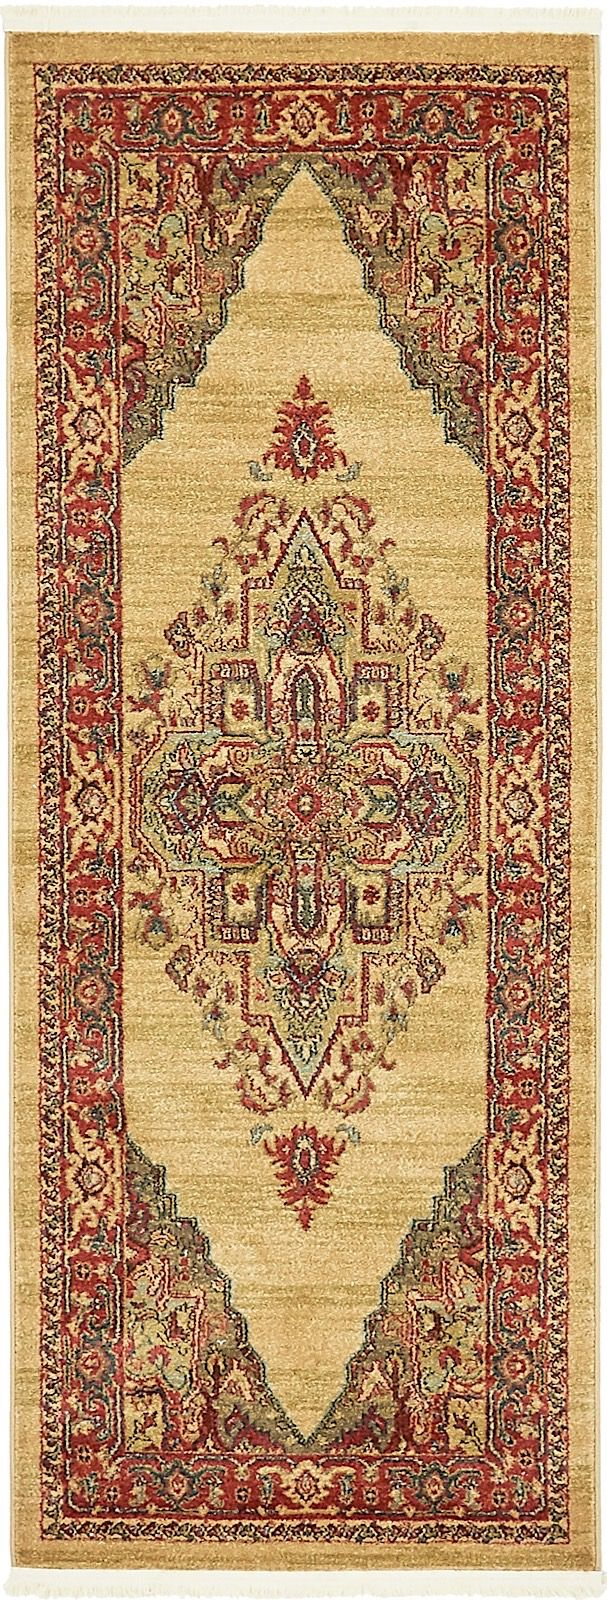 rugpal azar southwestern/lodge area rug collection